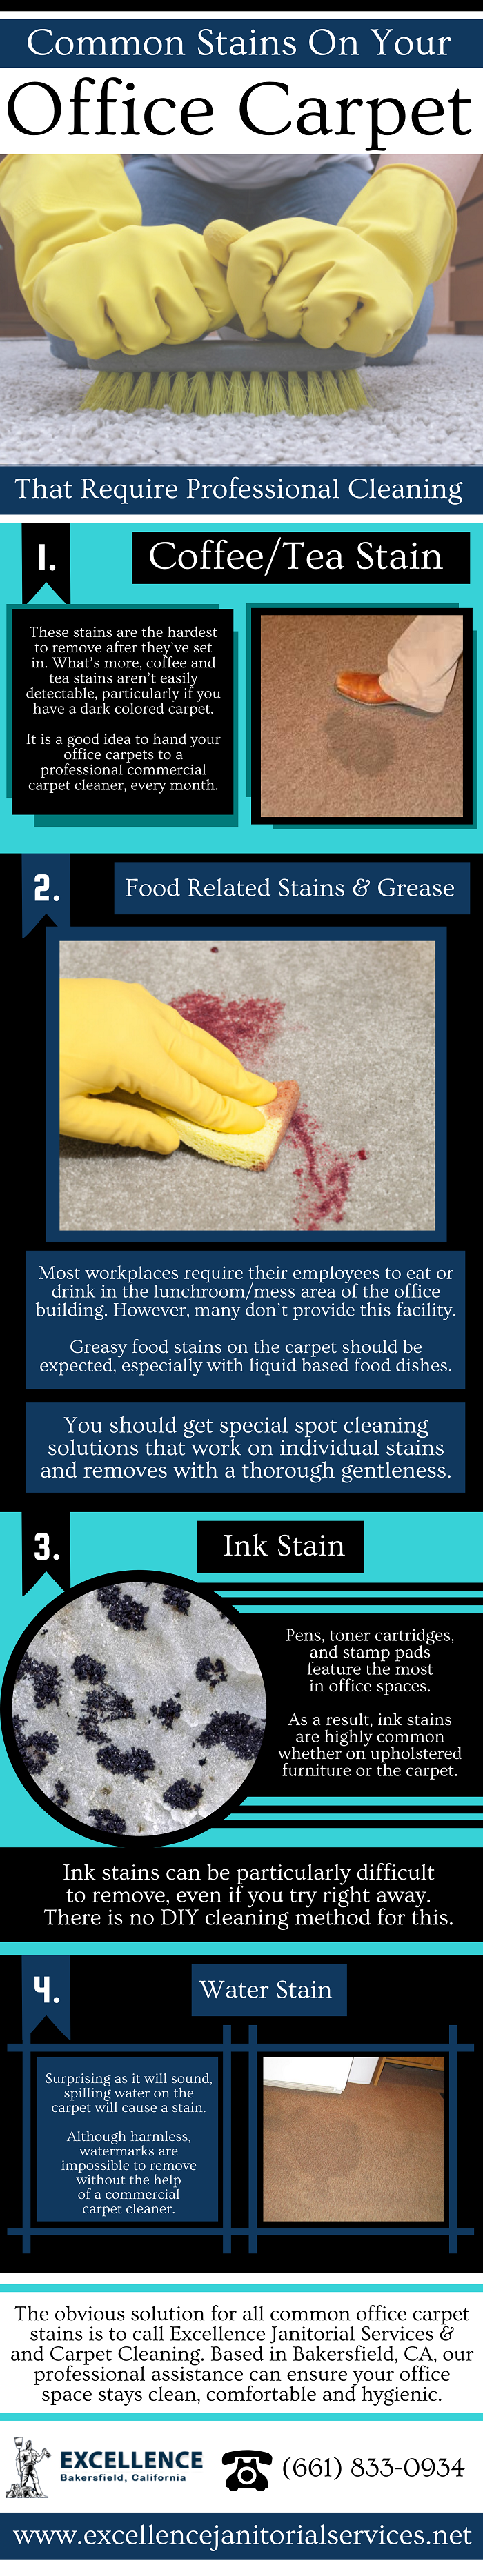 The obvious solution for all common office carpet stains is to call Excellence Janitorial Services and Carpet Cleaning.